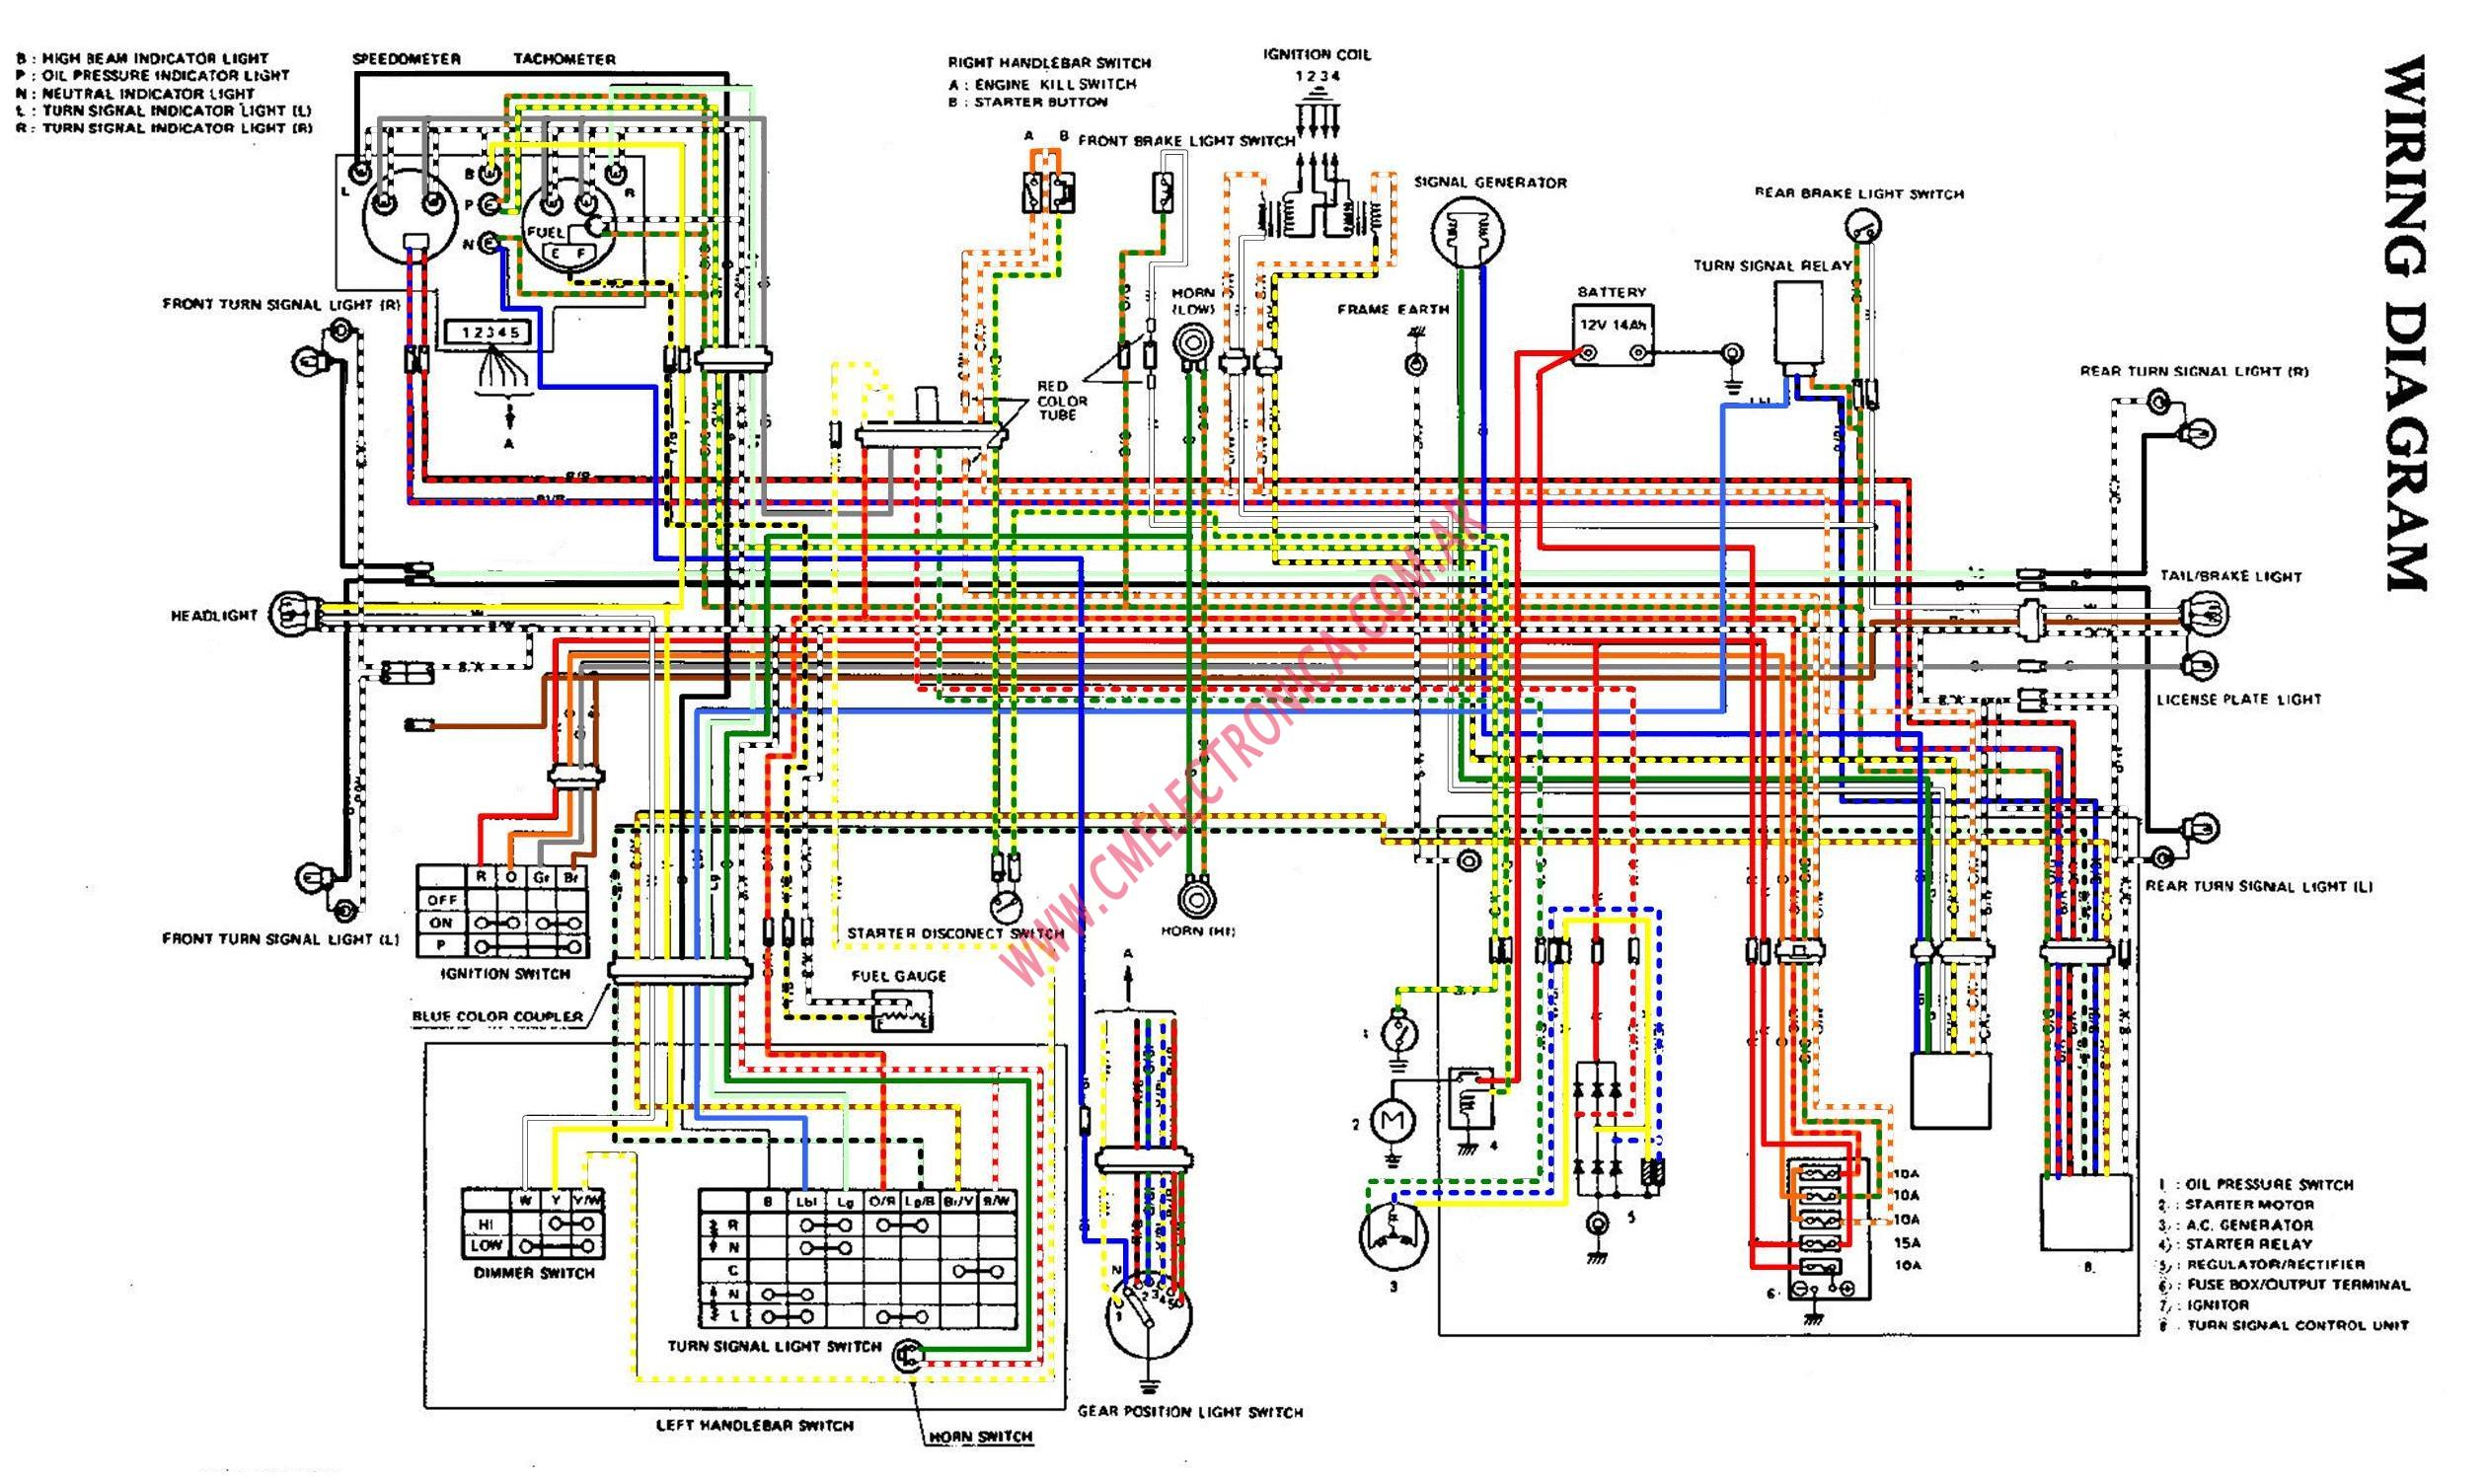 Magnetek 6300a Model 6345 Wiring Diagram | Wiring Liry on